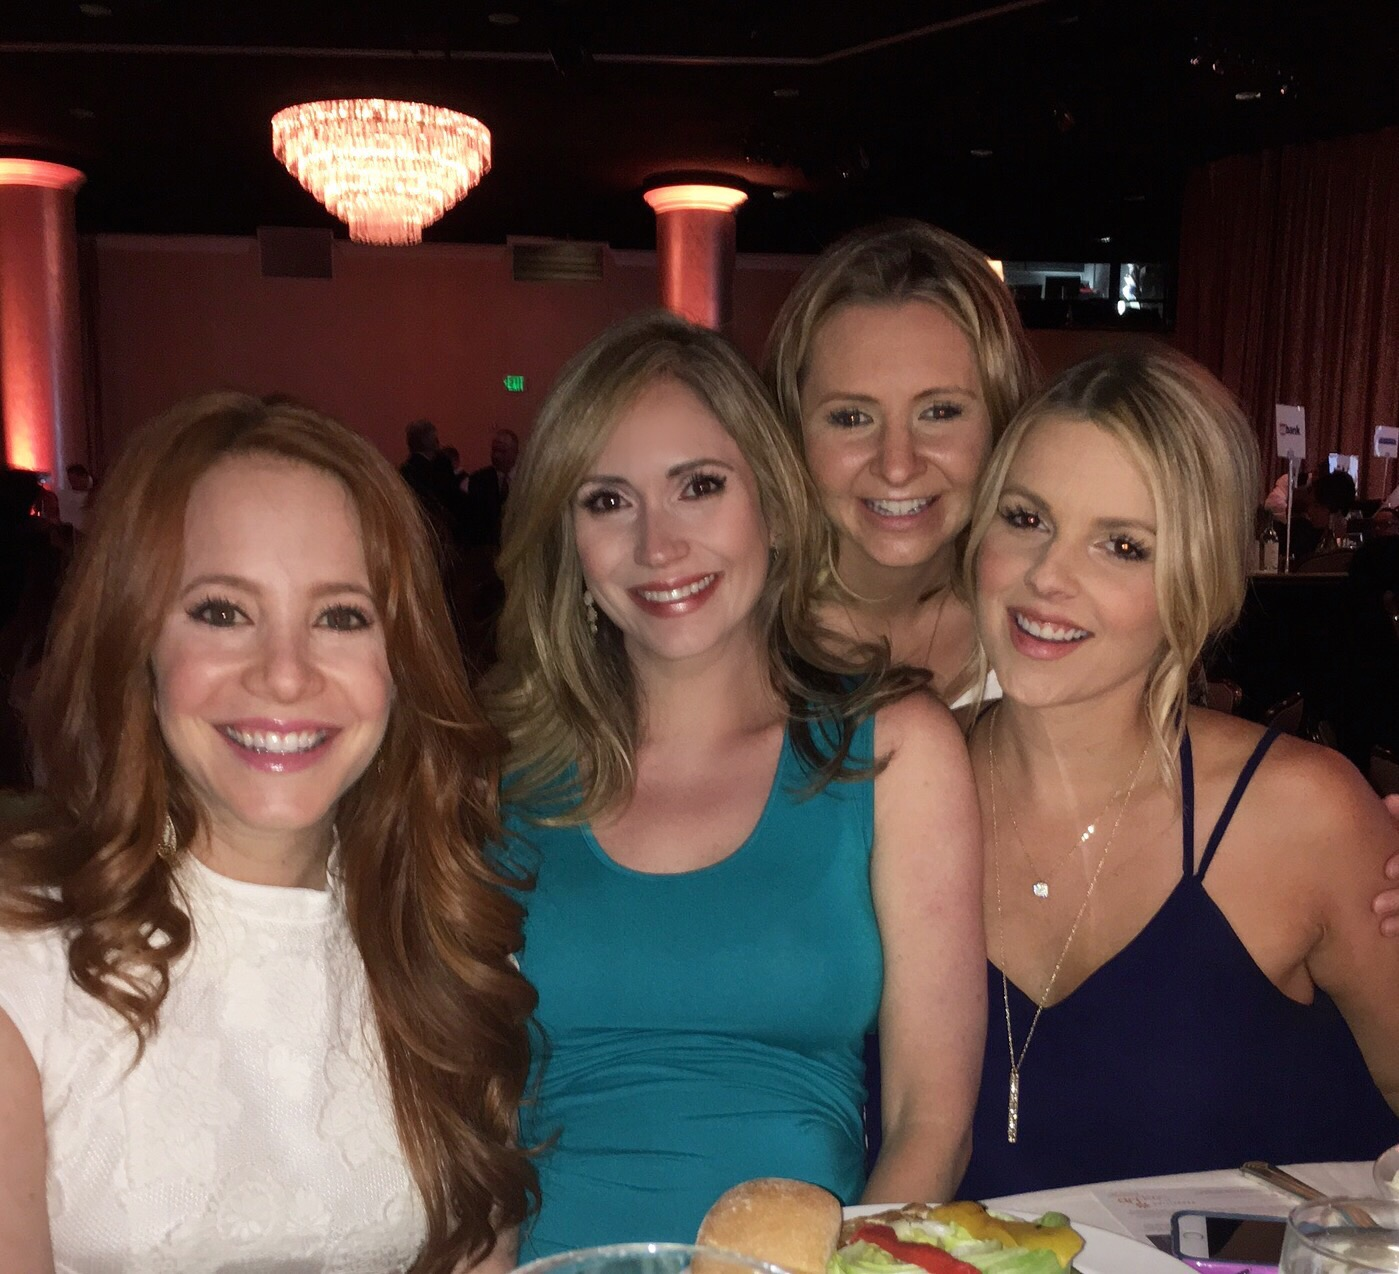 Amy Davidson, me, Beverley mitchell, and Ali Fedotowsky at the awards show,